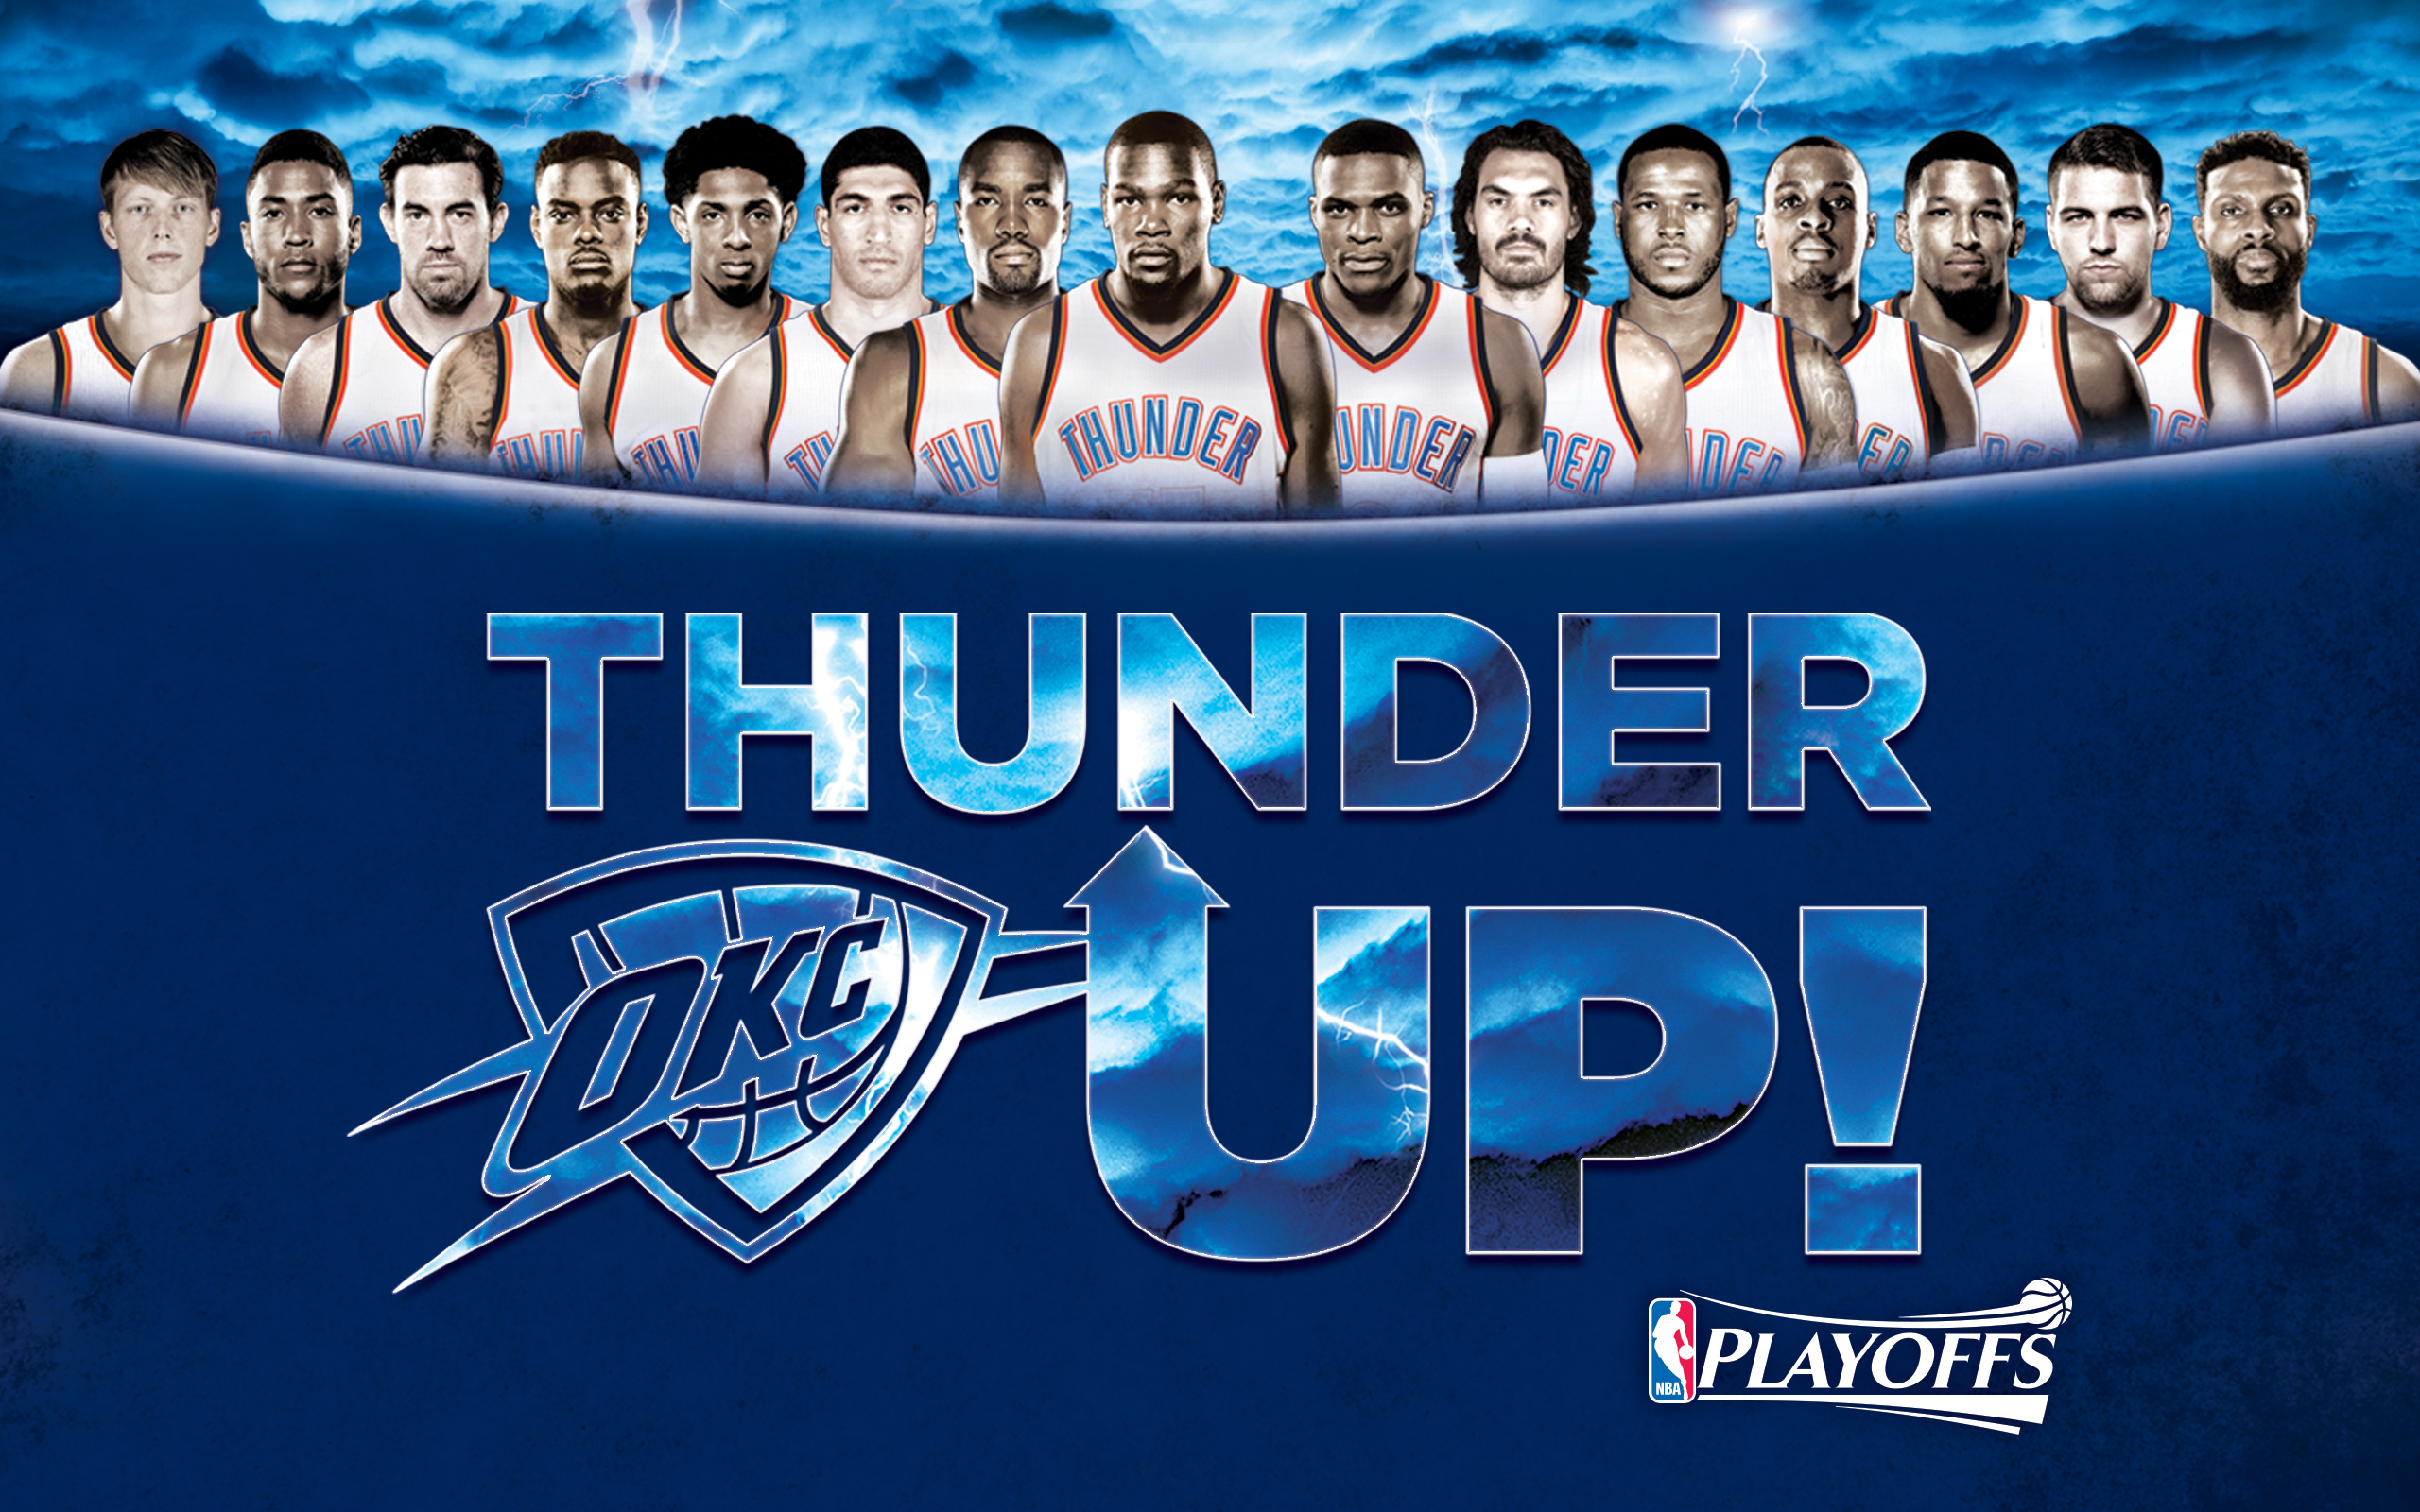 thunder playoffs wallpapers oklahoma city thunder